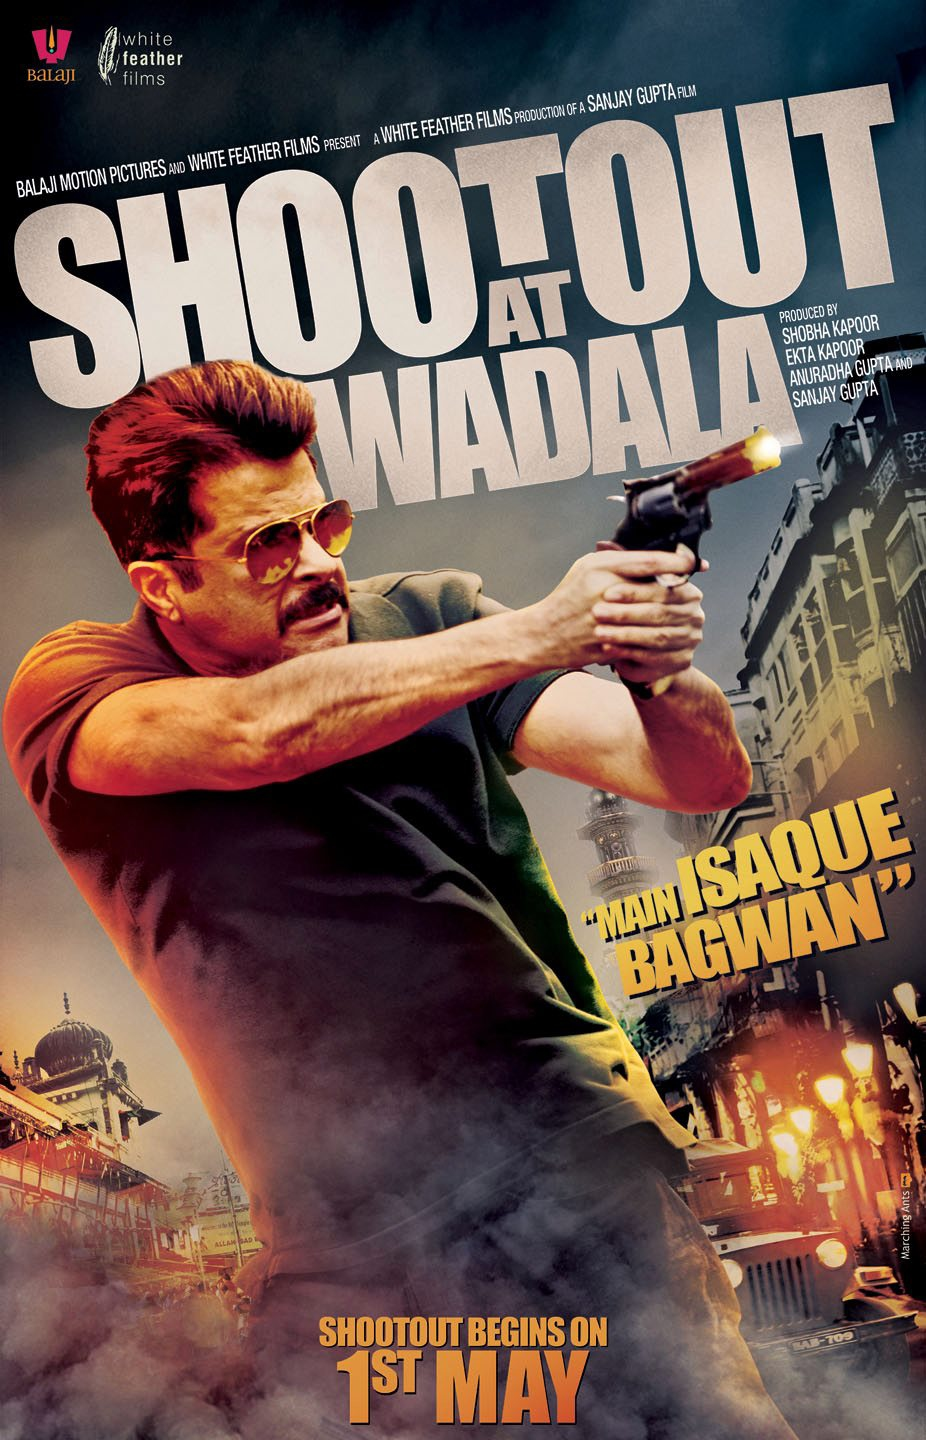 Shootout At Wadala - Movie Poster #5 (Original)